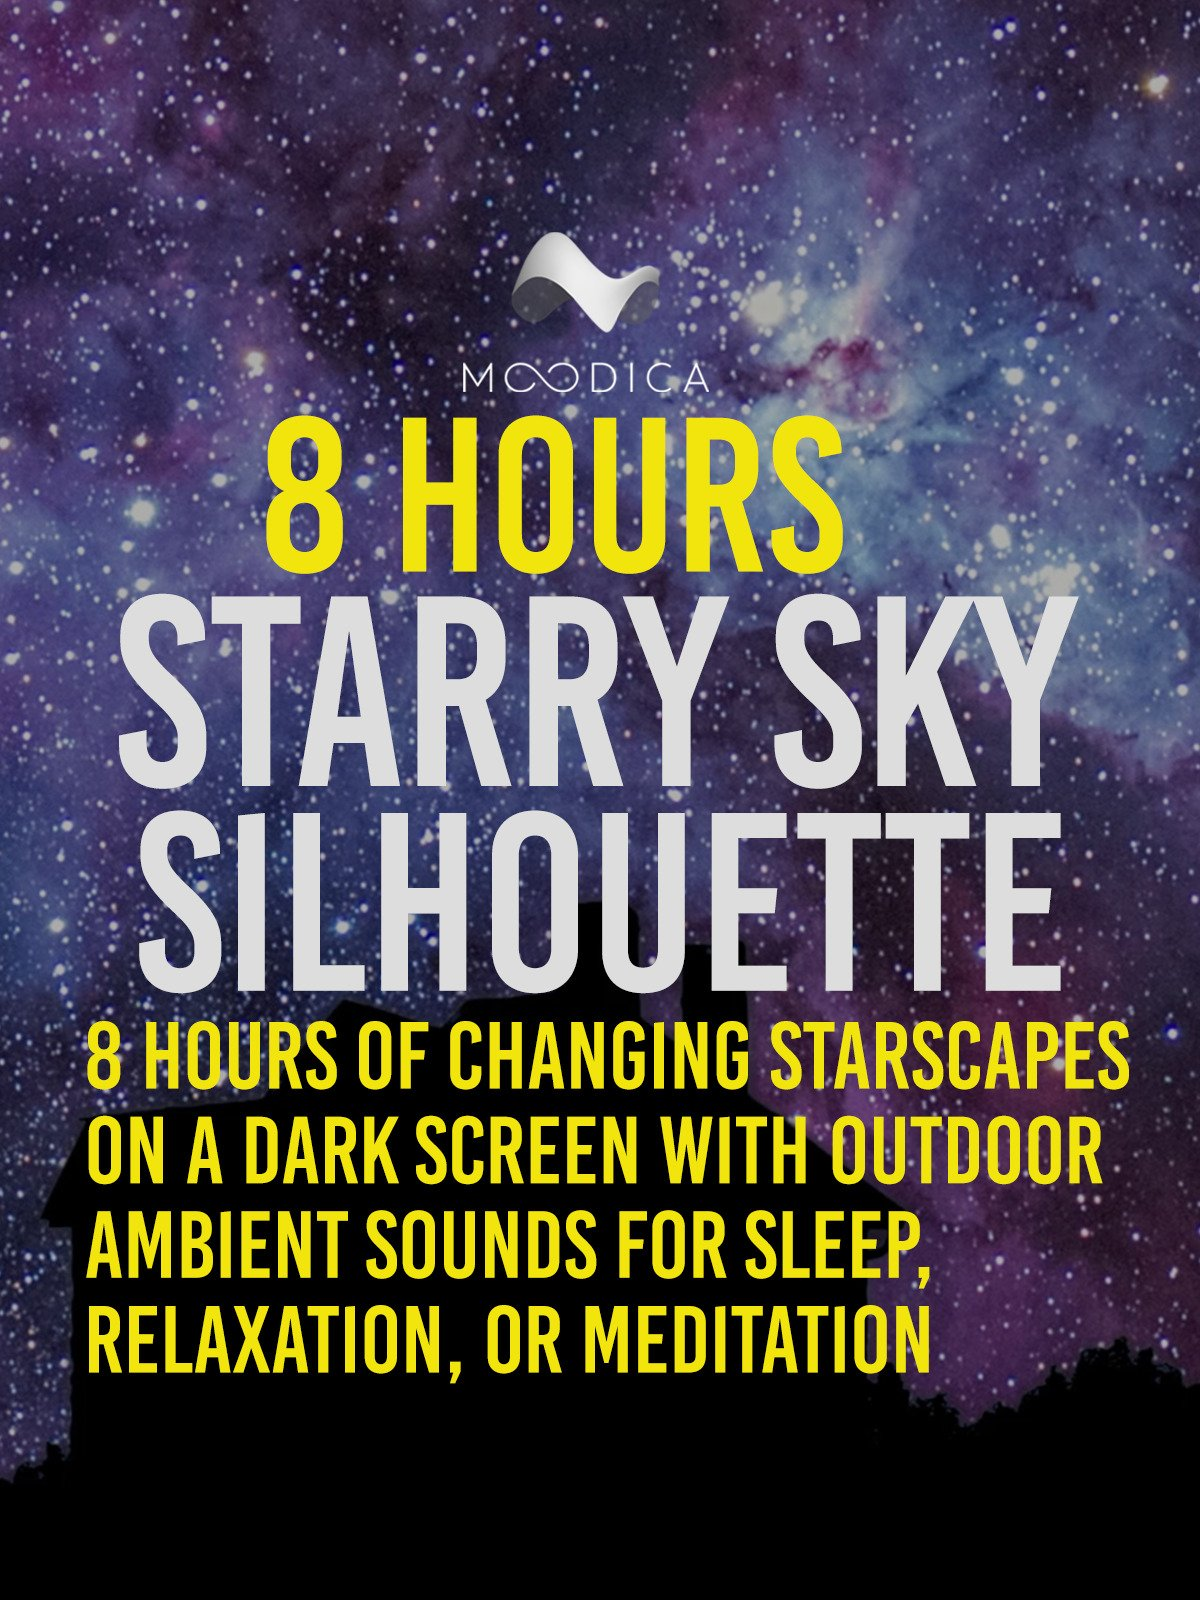 8 Hours: Starry Sky Silhouette: 8 Hours of Changing Starscapes On A Dark Screen With Outdoor Ambient Sounds For Sleep, Relaxation, or Meditation